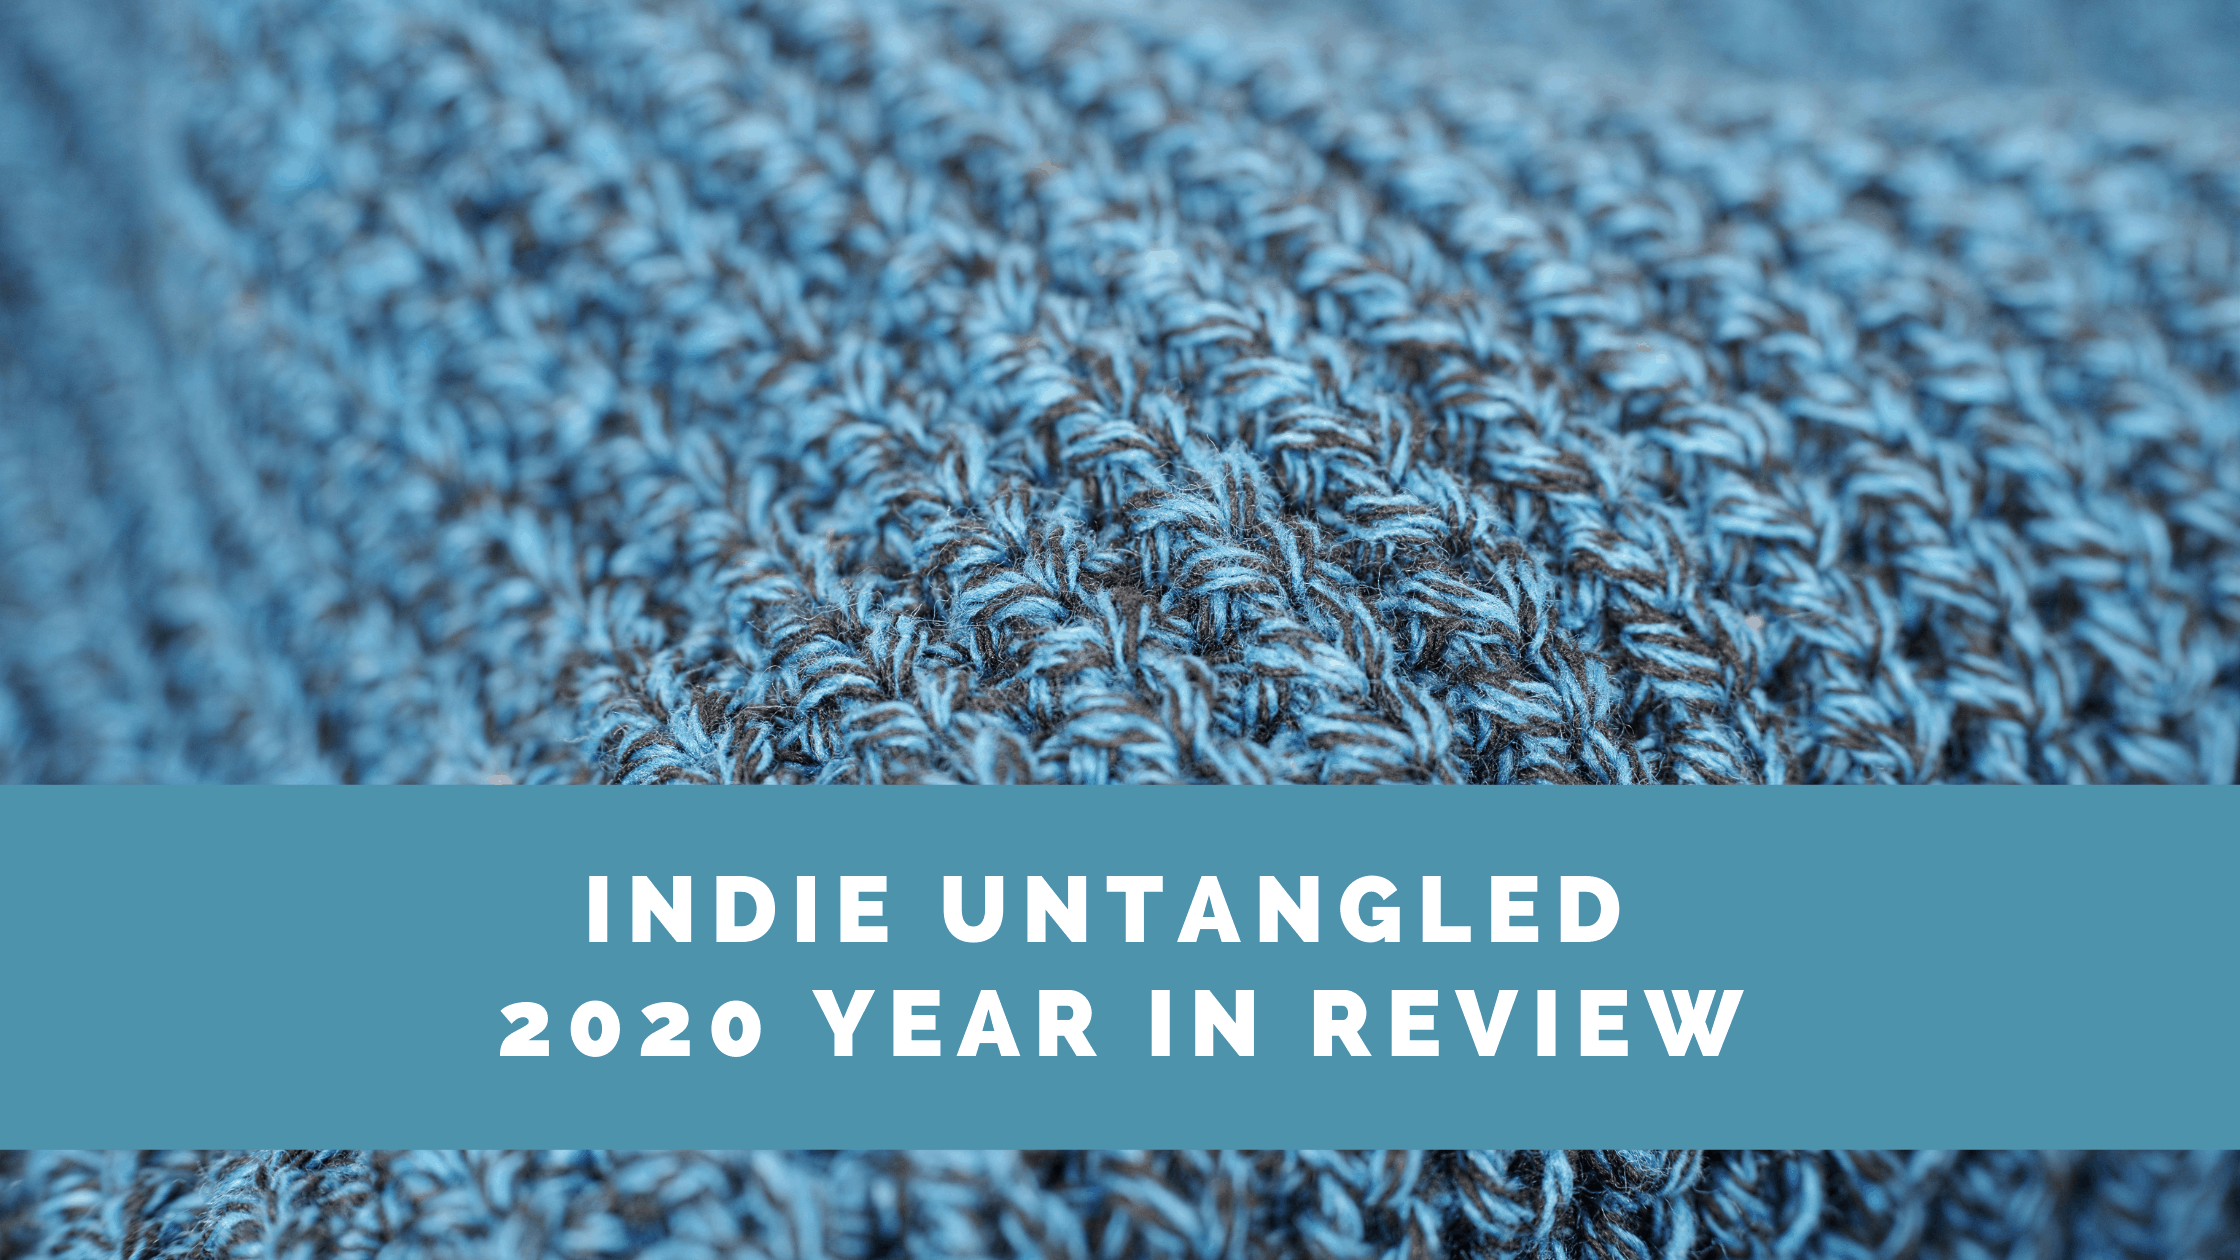 Blue marled stockinette fabric and the words Indie Untangled 2020 Year in Review